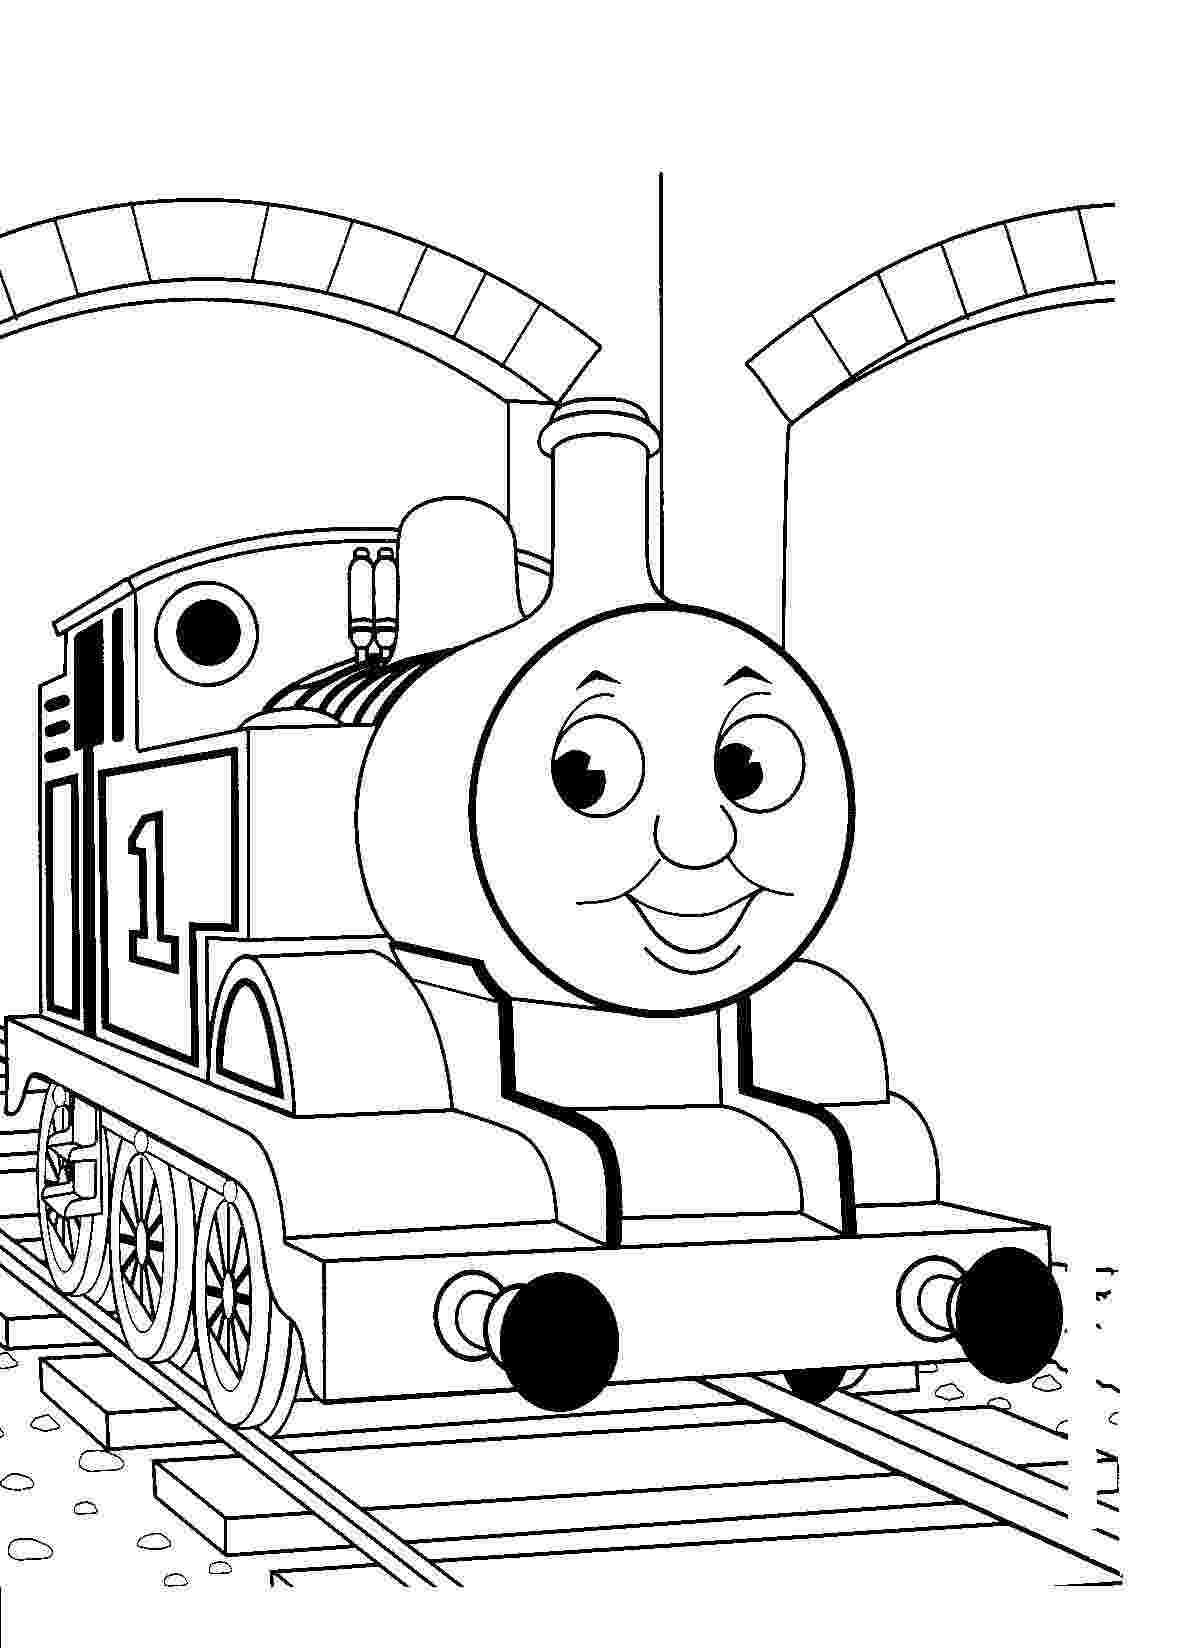 free train coloring pages free printable train coloring pages for kids cool2bkids coloring pages train free